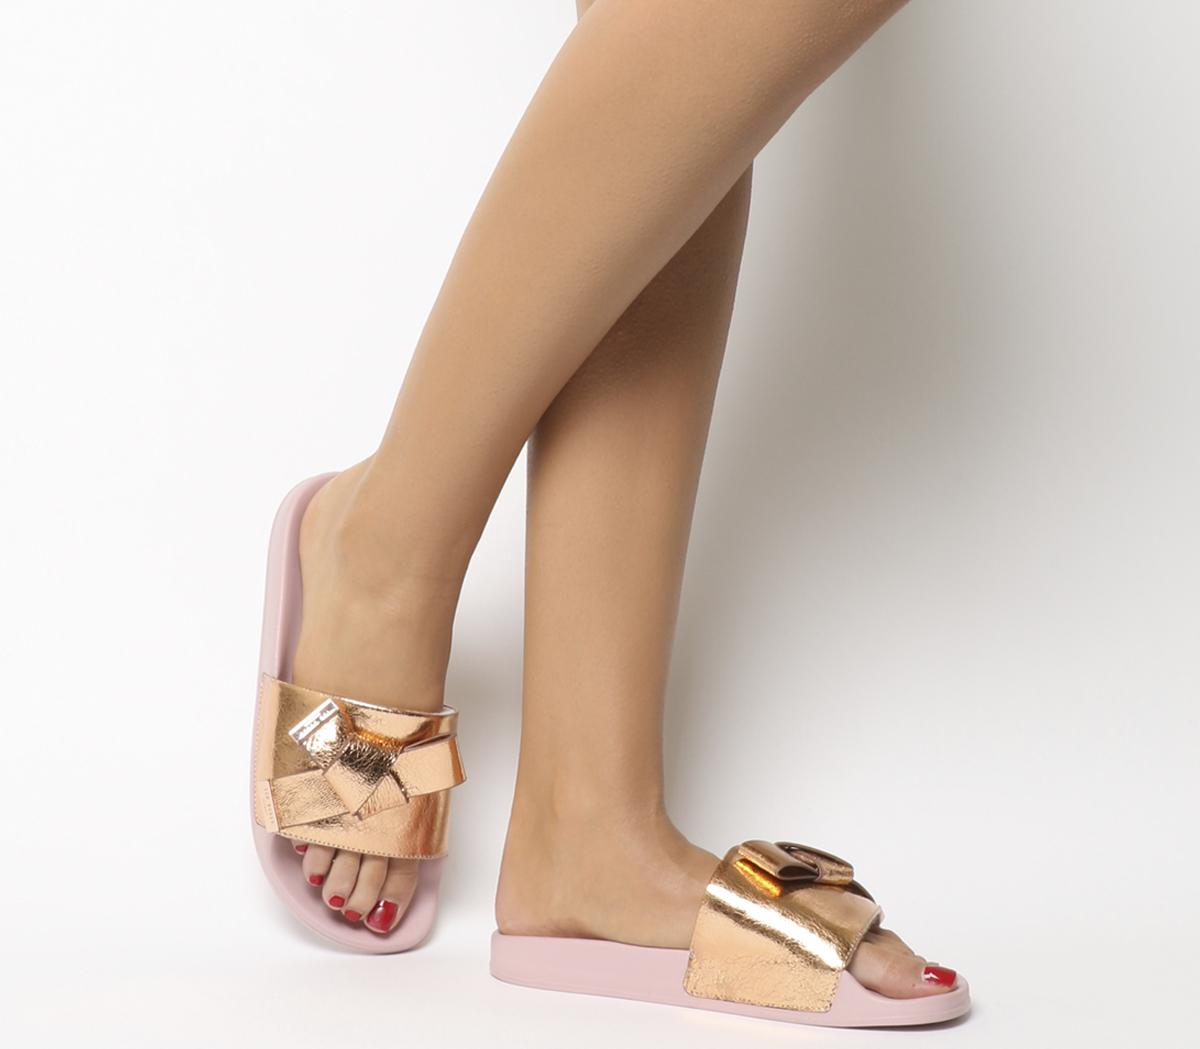 b3a79e311 Ted Baker Melvah Bow Slides Rose Gold Leather - Sandals